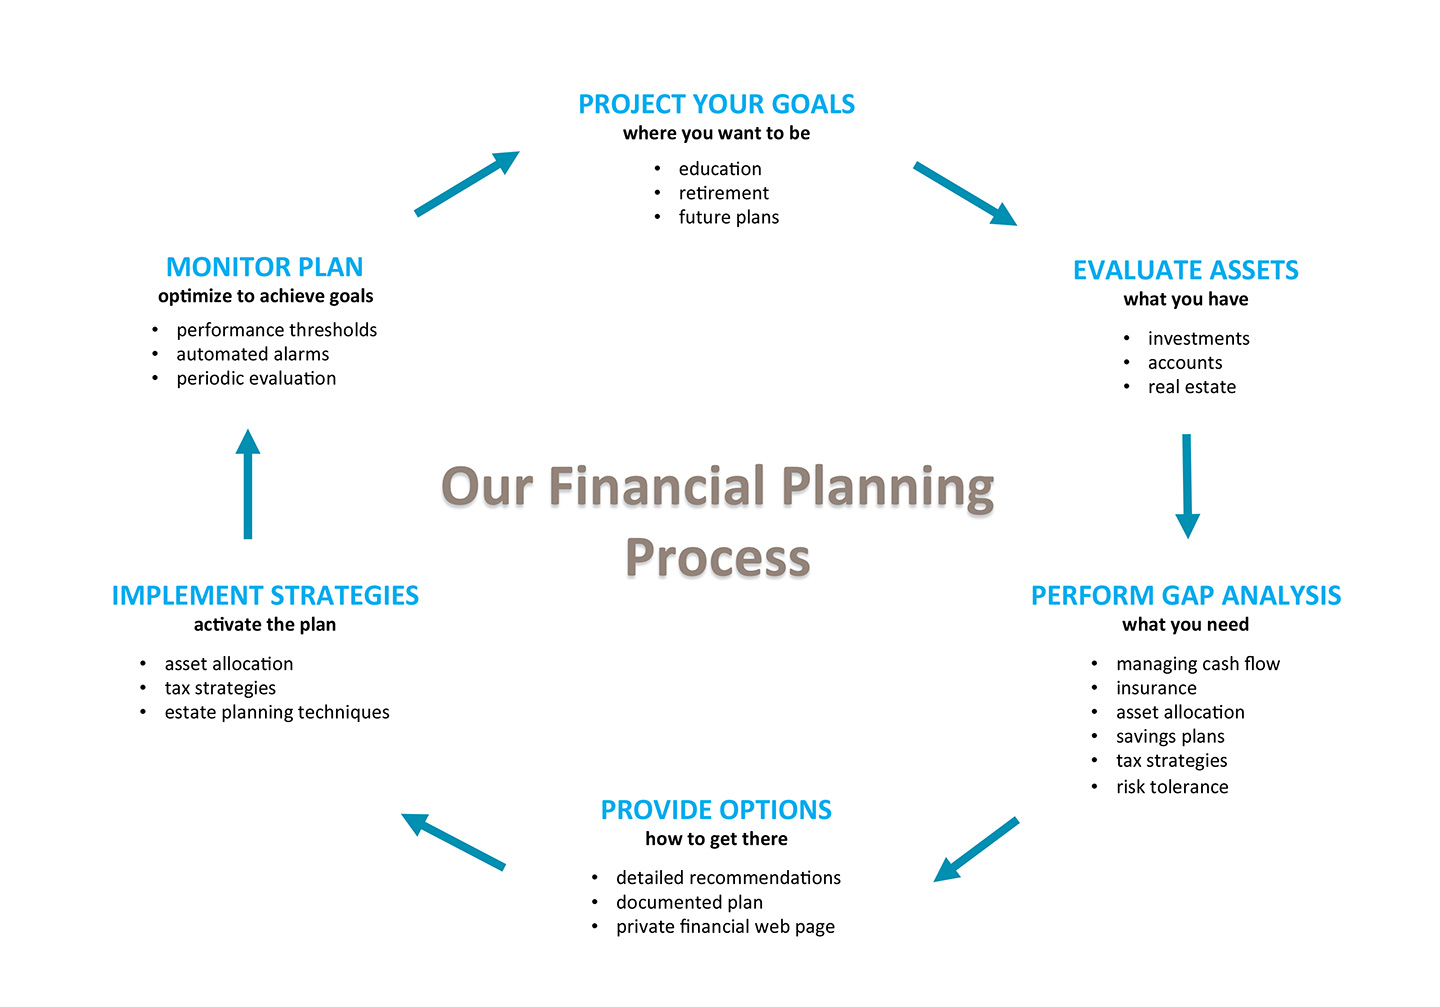 Blue Blaze Financial Advisors' Financial Planning Process graphic